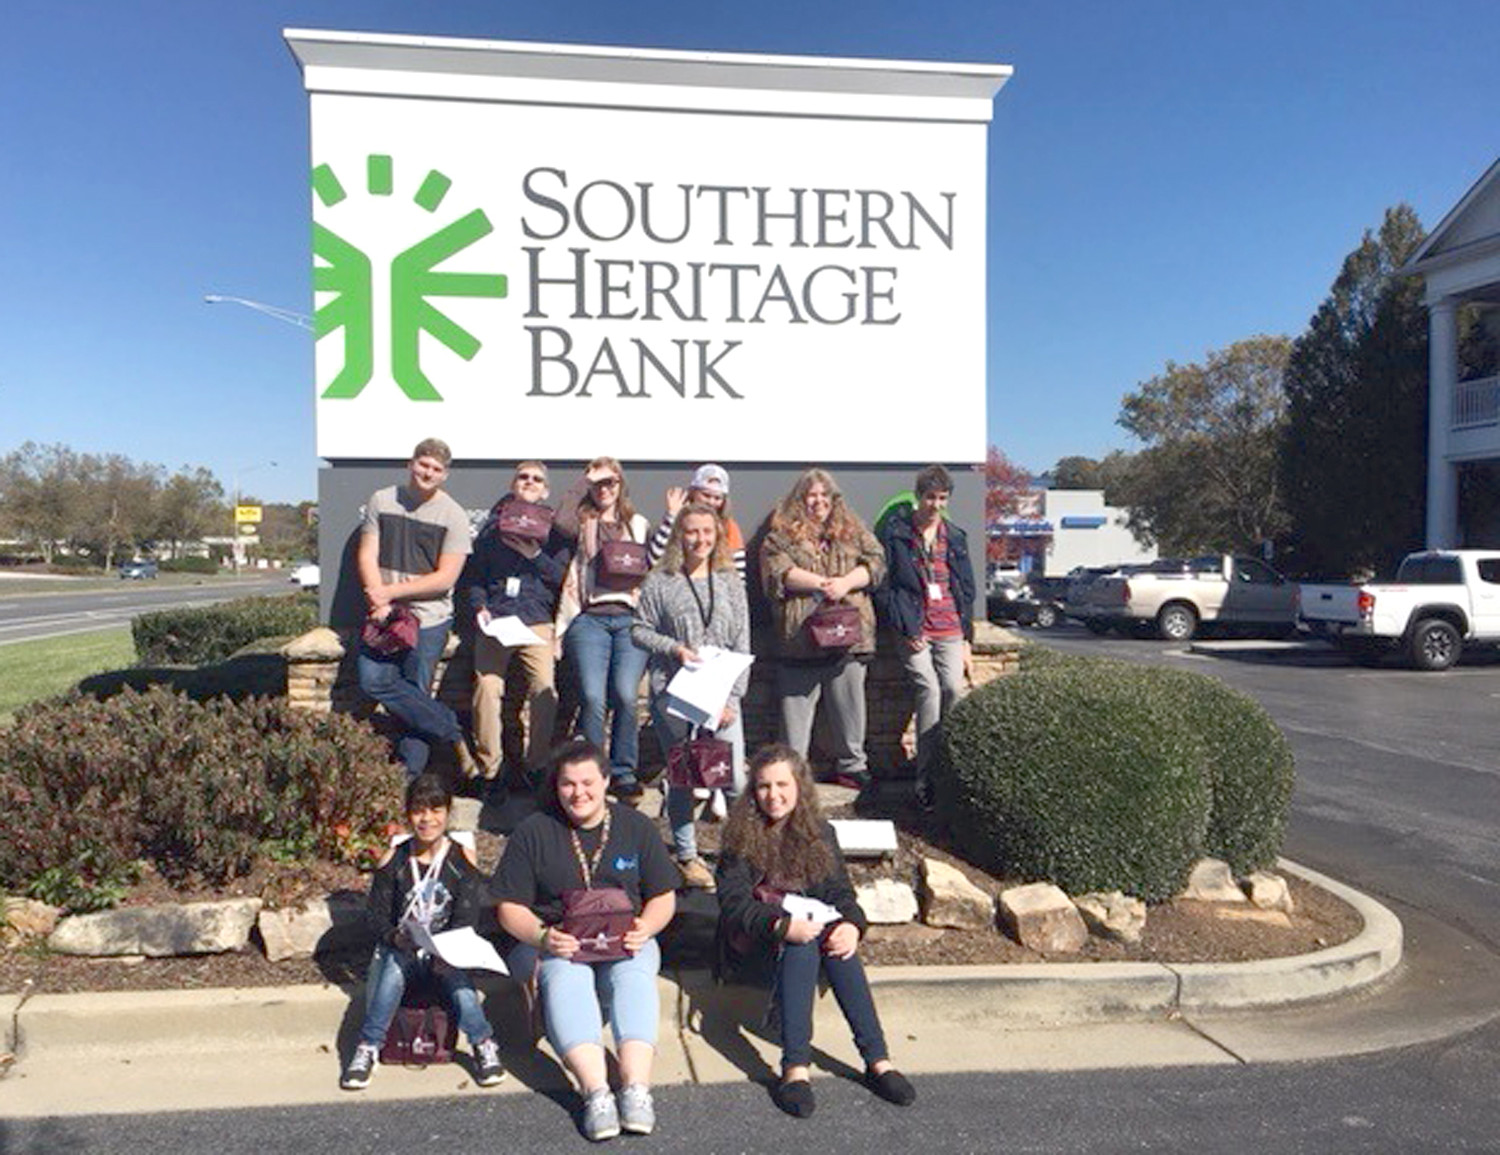 SOUTHERN HERITAGE Bank was one of many stops on an industry tour taken by students at Walker Valley High School.